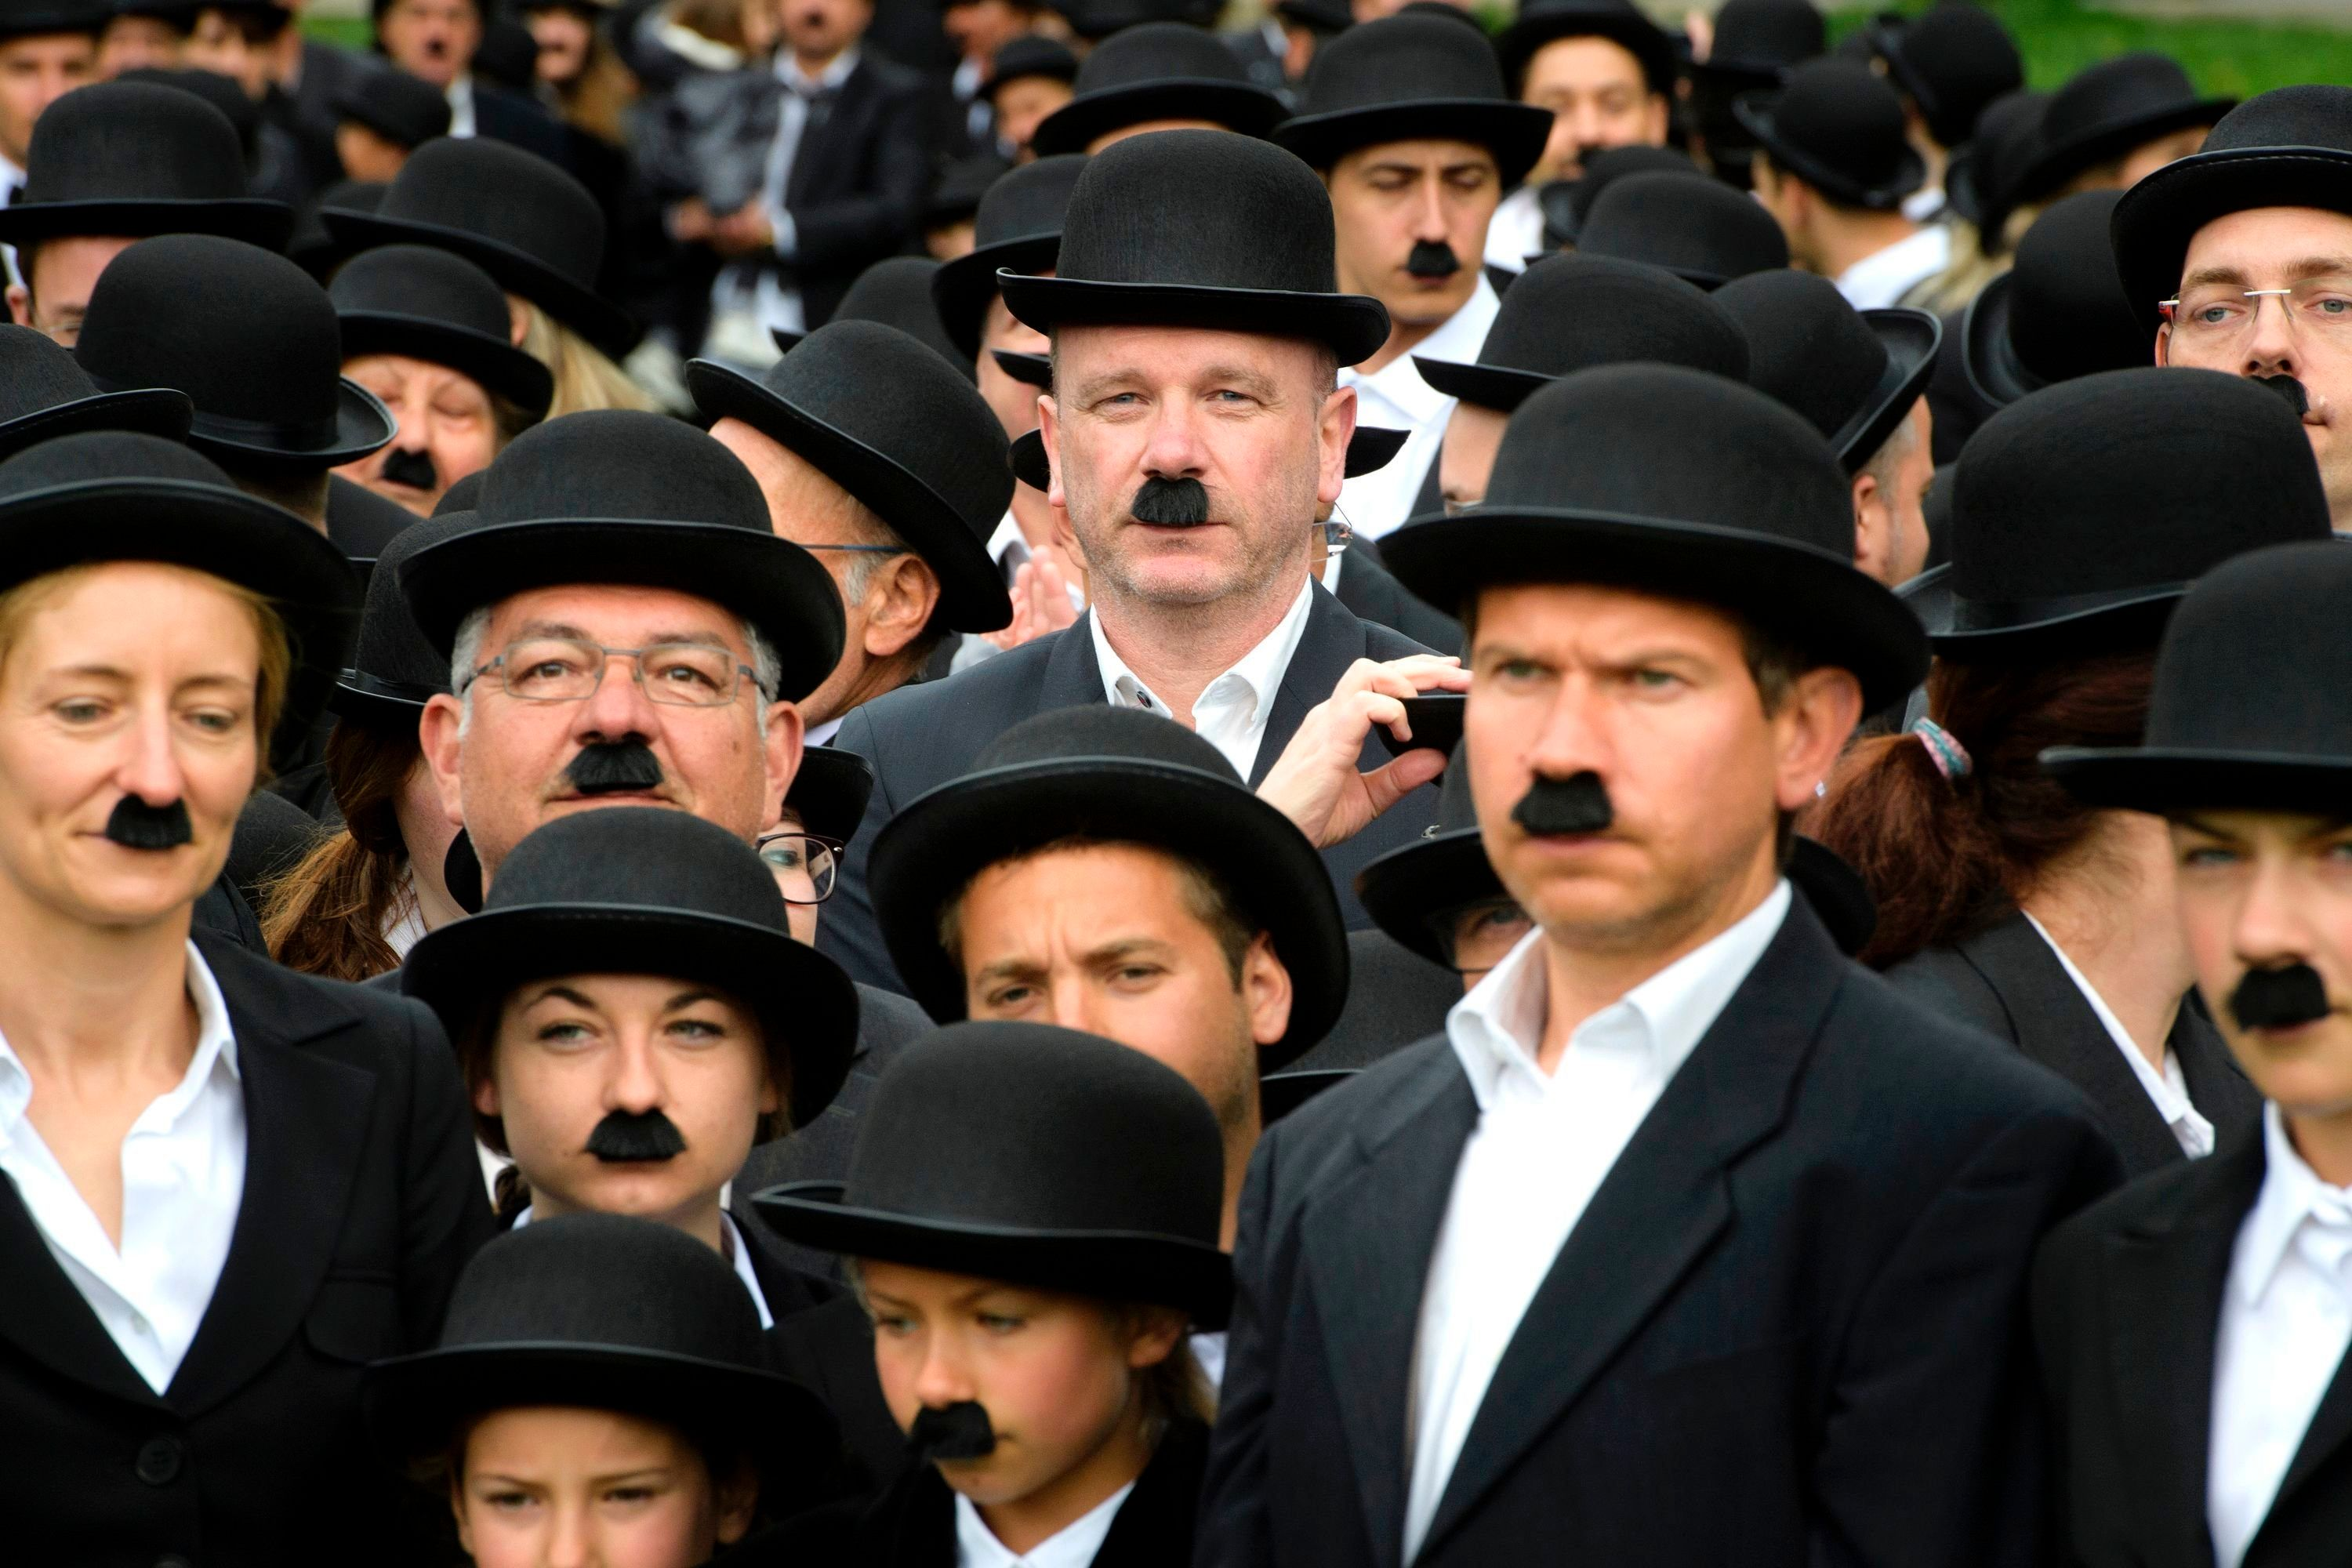 Some 662 people dressed as 'The Tramp' pose for a group picture to mark the first anniversary of Chaplins World By Grevin, and Charlie Chaplins birthday, as the museum plans to set the record for the worlds largest gathering of people dressed as The Tramp, on April 16, 2017 in Corsier-sur-Vevey.  Chaplins World, a large-scale museum dedicated to Charlie Chaplin and his lifes work is located in the Manoir de Ban and its park where Chaplin and his family lived through 1952 -1977.  / AFP PHOTO / Richard Juilliart        (Photo credit should read RICHARD JUILLIART/AFP/Getty Images)